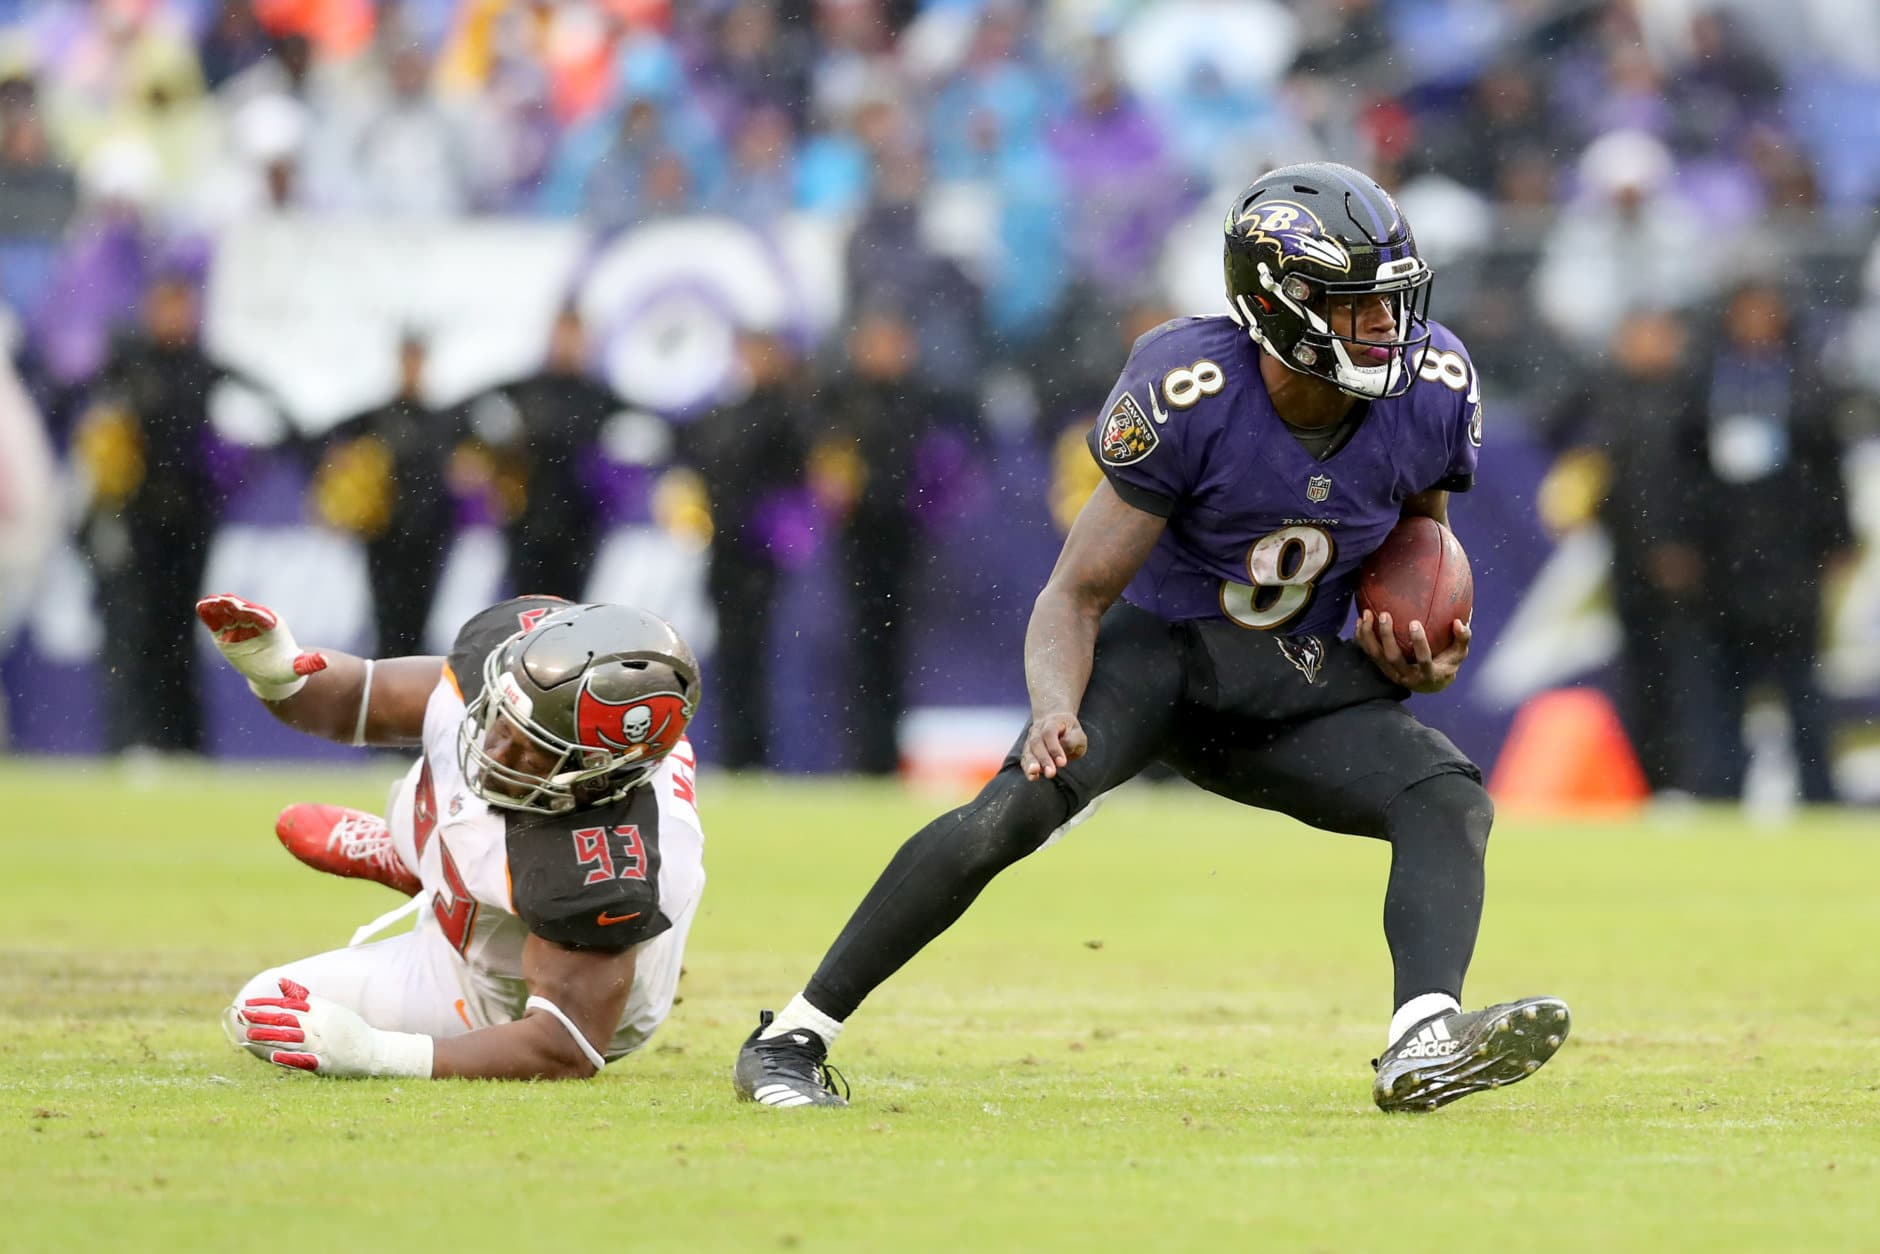 BALTIMORE, MARYLAND - DECEMBER 16: Quarterback Lamar Jackson #8 of the Baltimore Ravens runs in front of Gerald McCoy #93 of the Tampa Bay Buccaneers in the second half at M&T Bank Stadium on December 16, 2018 in Baltimore, Maryland. (Photo by Rob Carr/Getty Images)